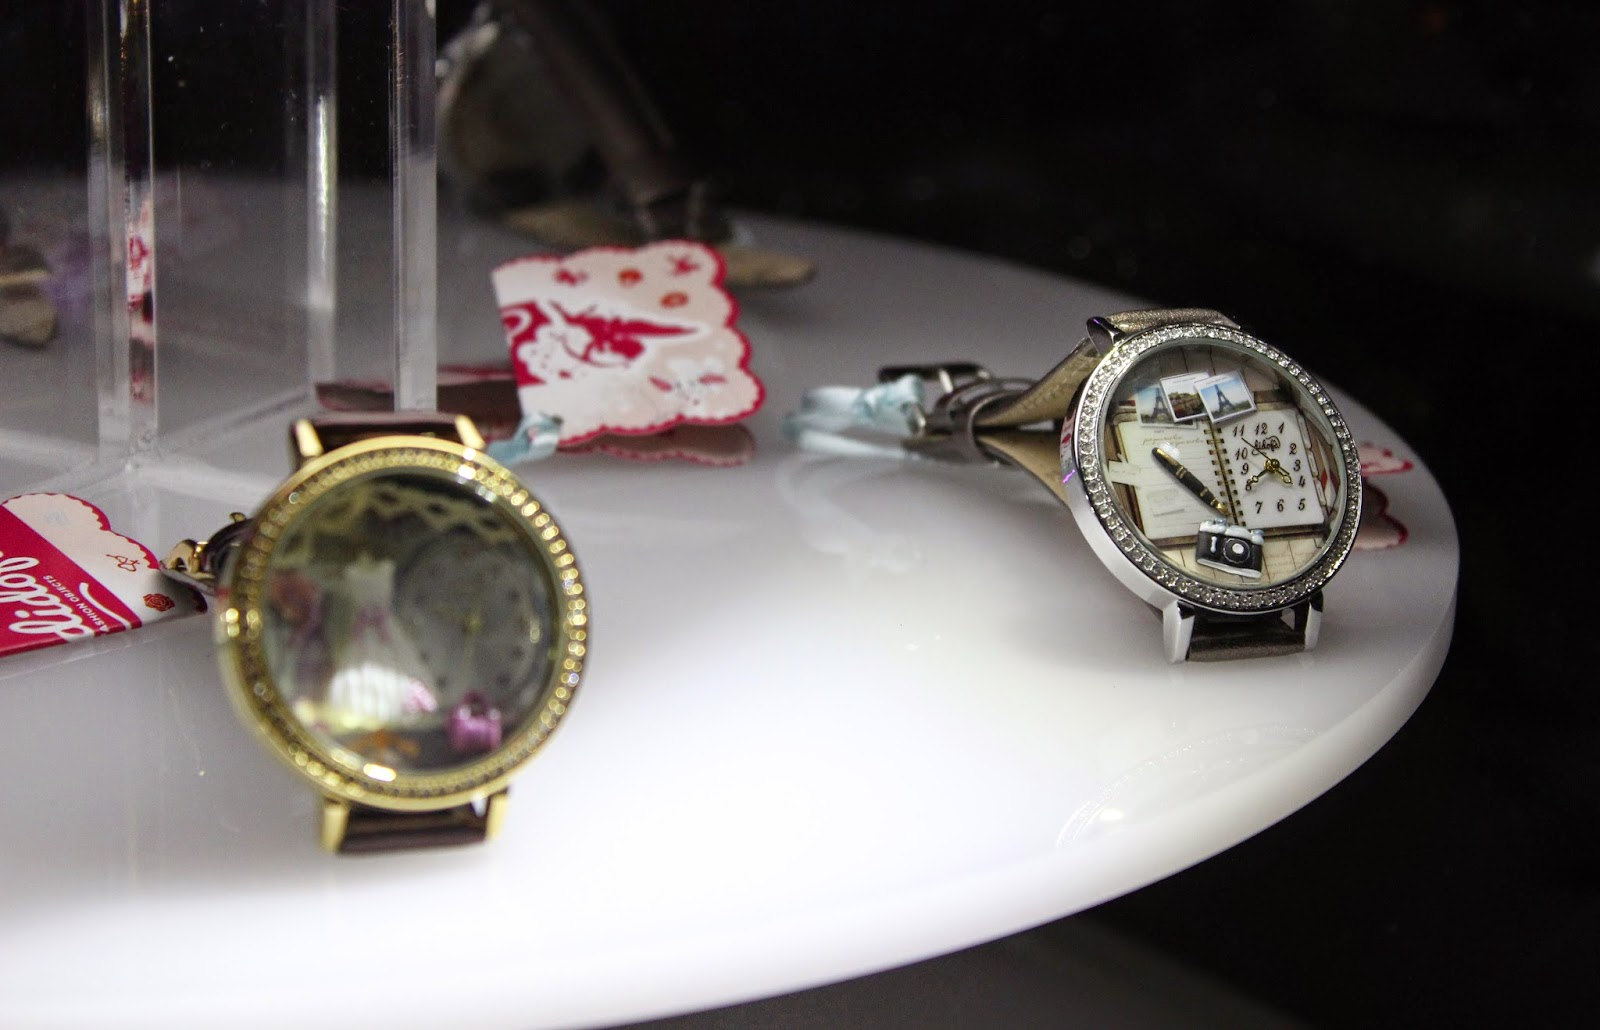 Eniwhere Fashion - Didofà orologi - Just Cavalli